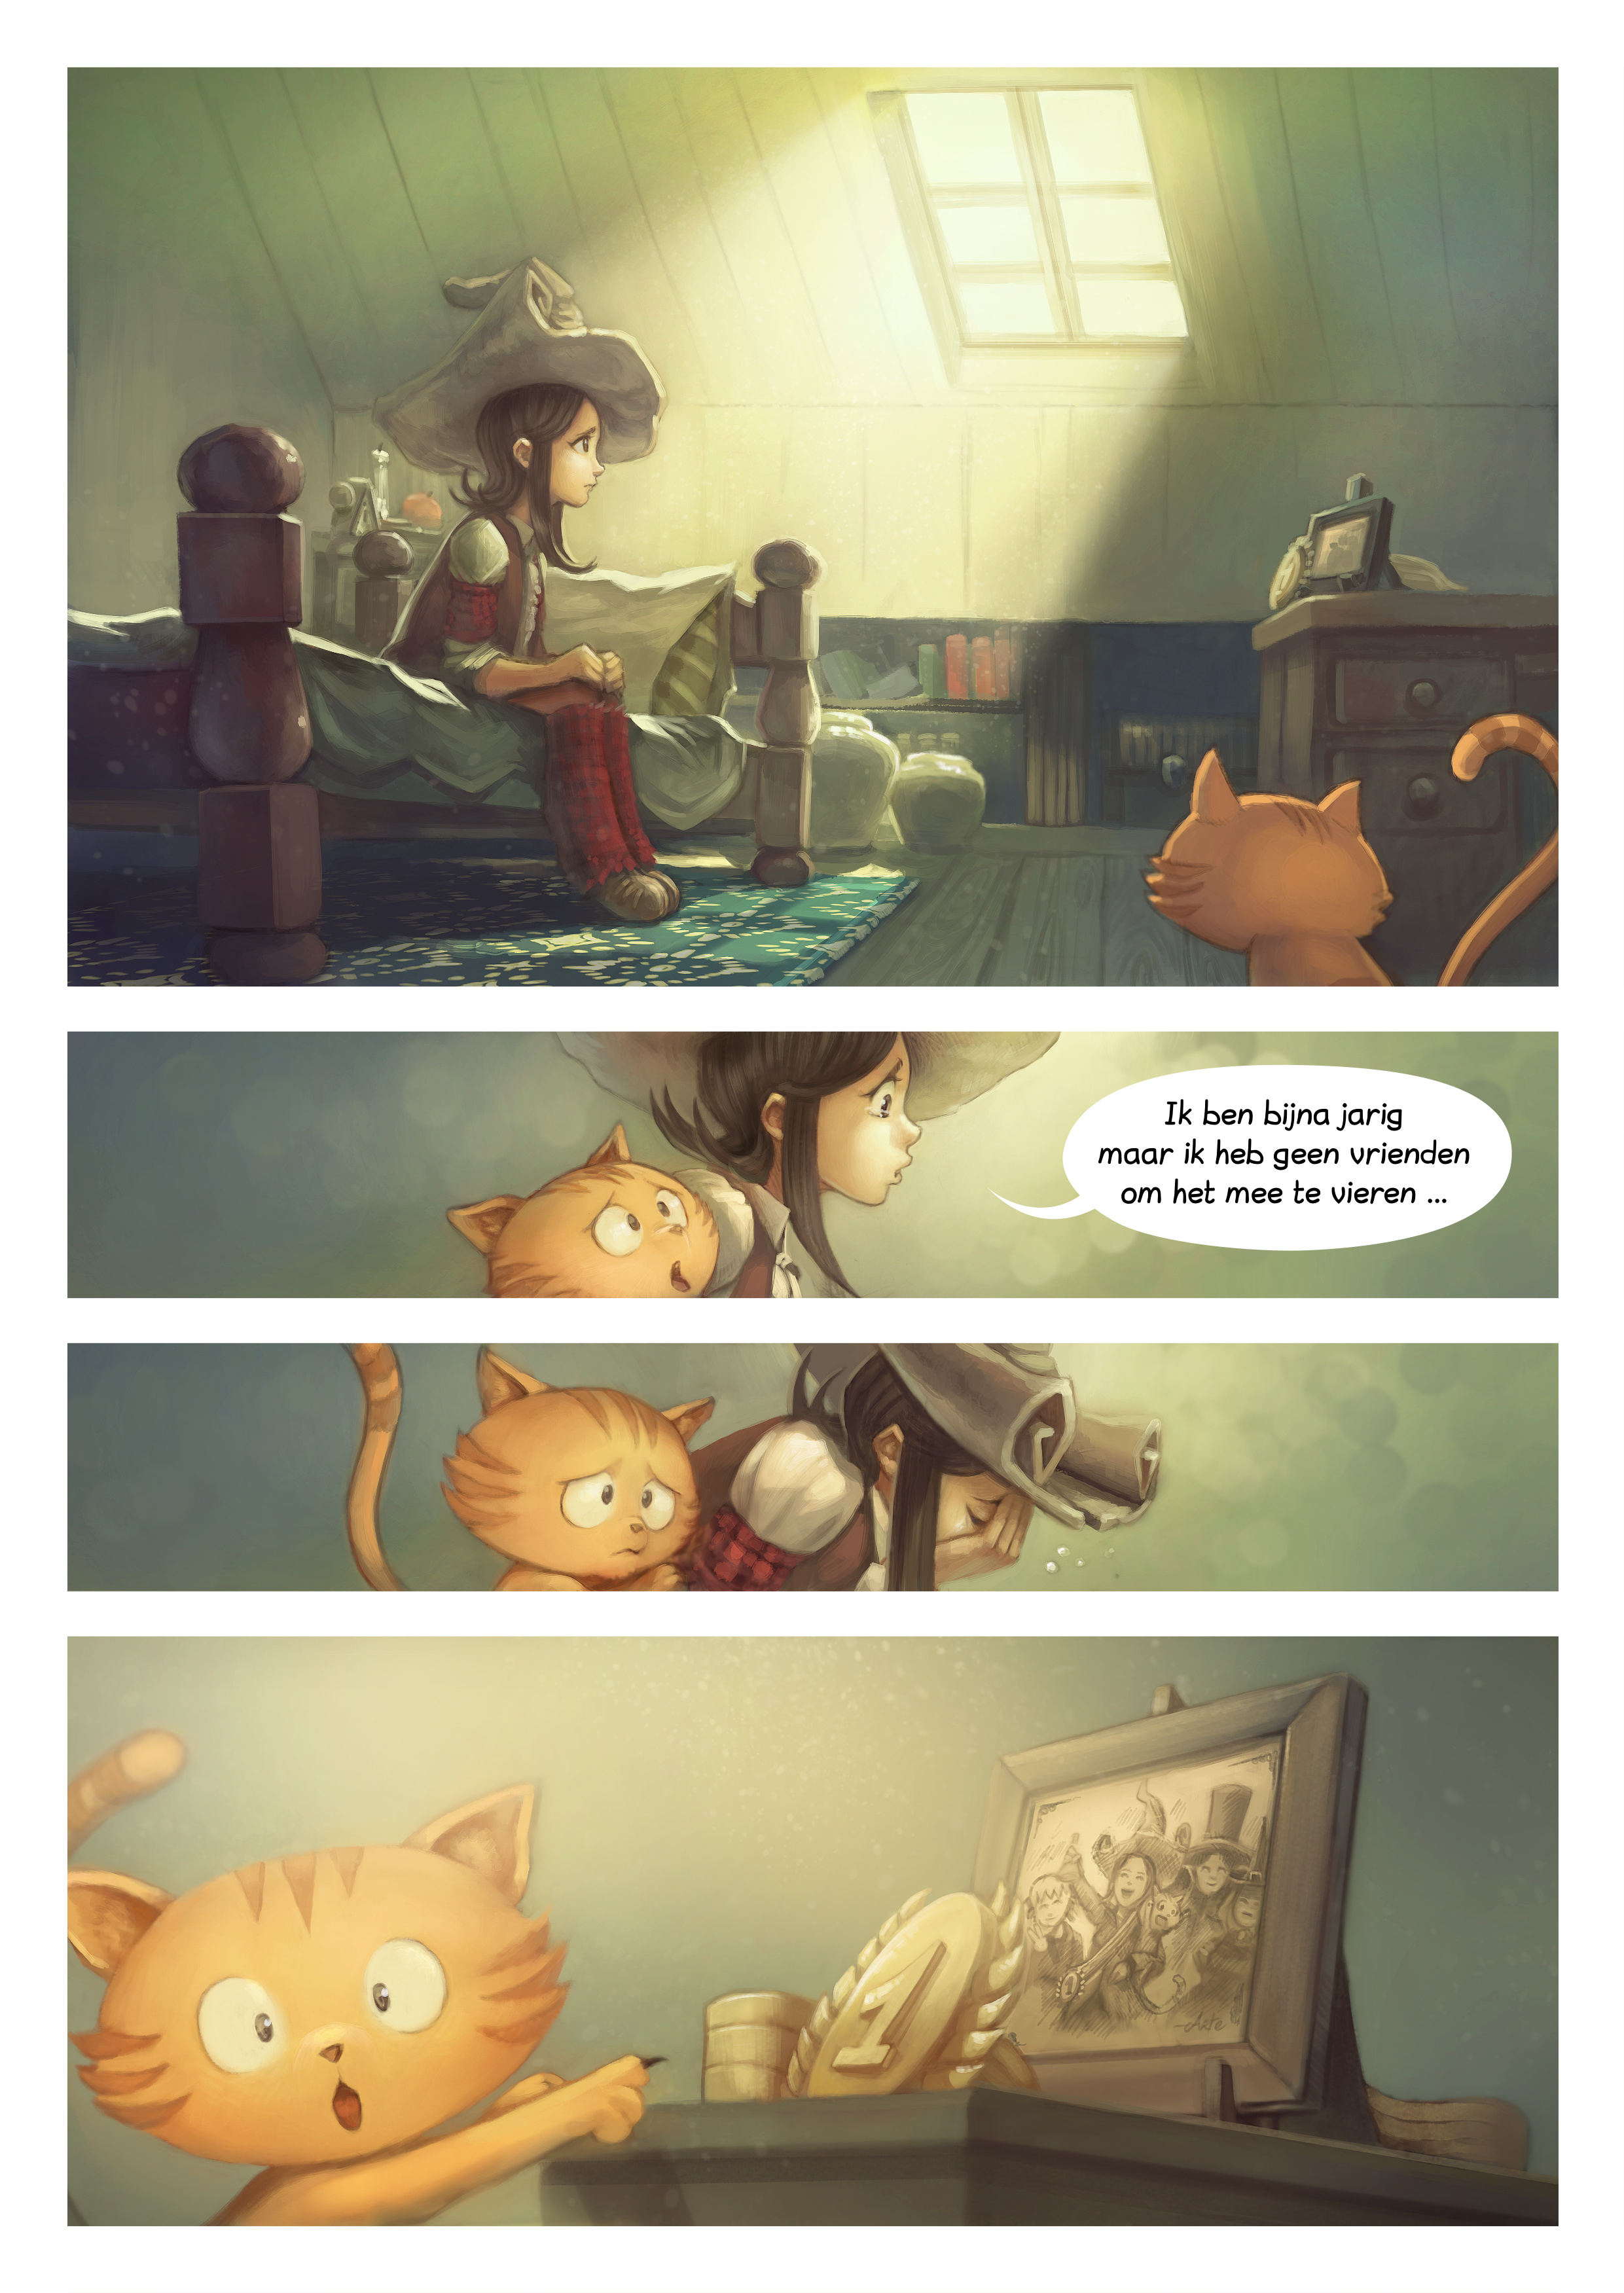 A webcomic page of Pepper&Carrot, aflevering 8 [nl], pagina 1